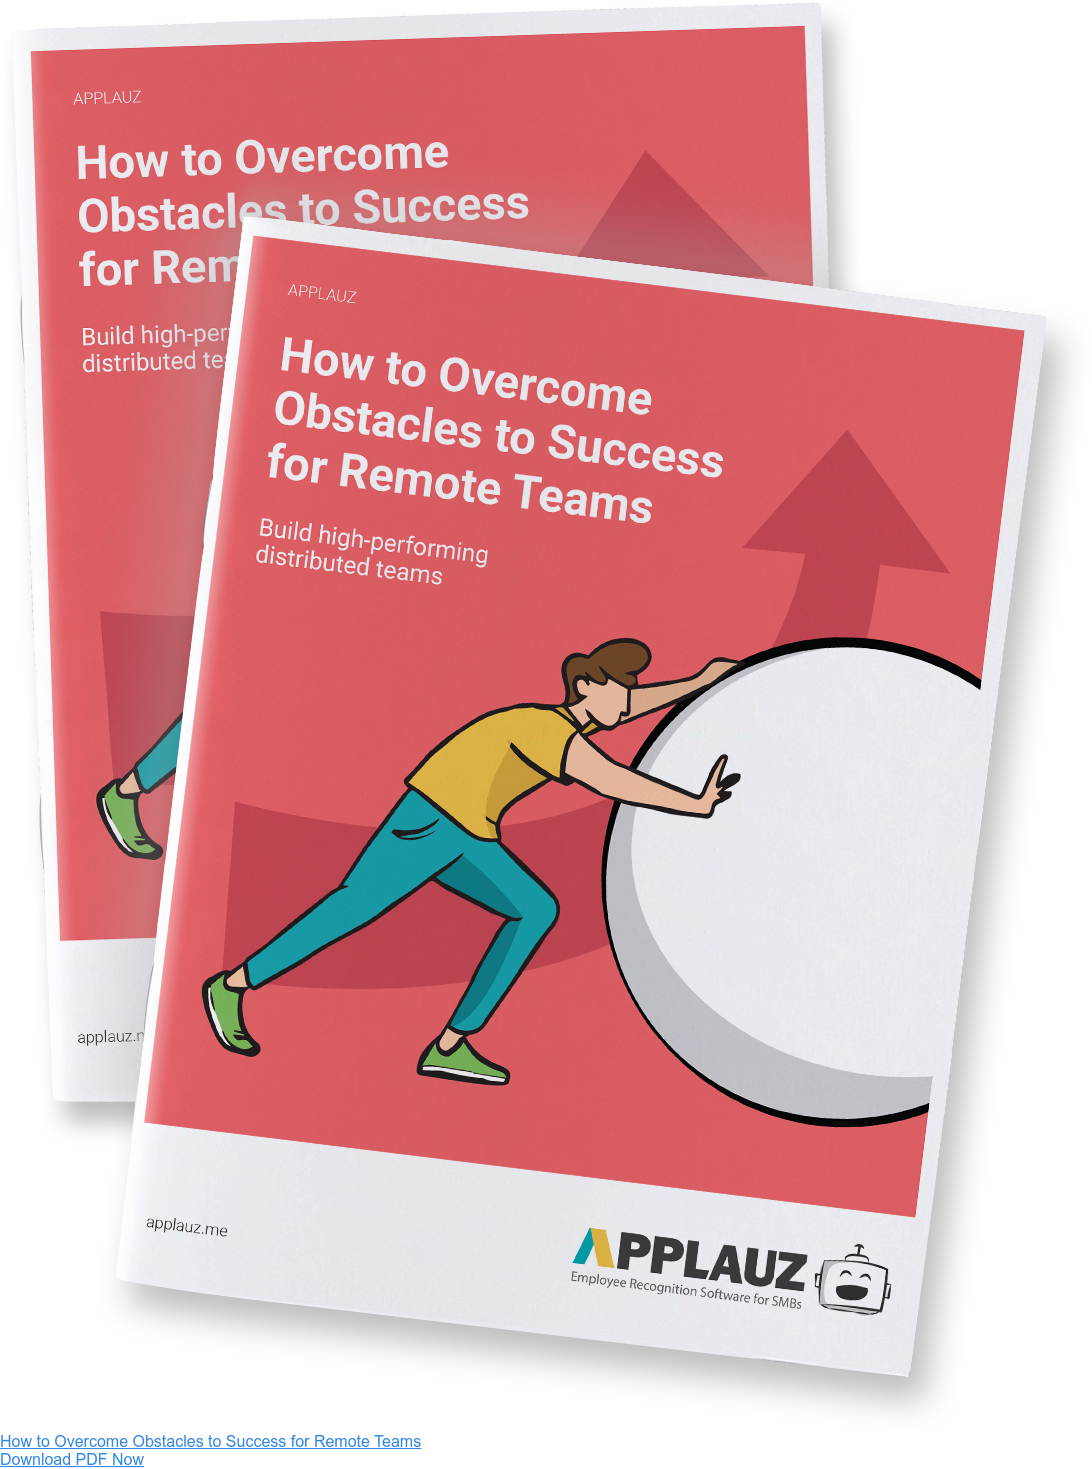 How to Overcome Obstacles to Success for Remote Teams - Download PDF Guide